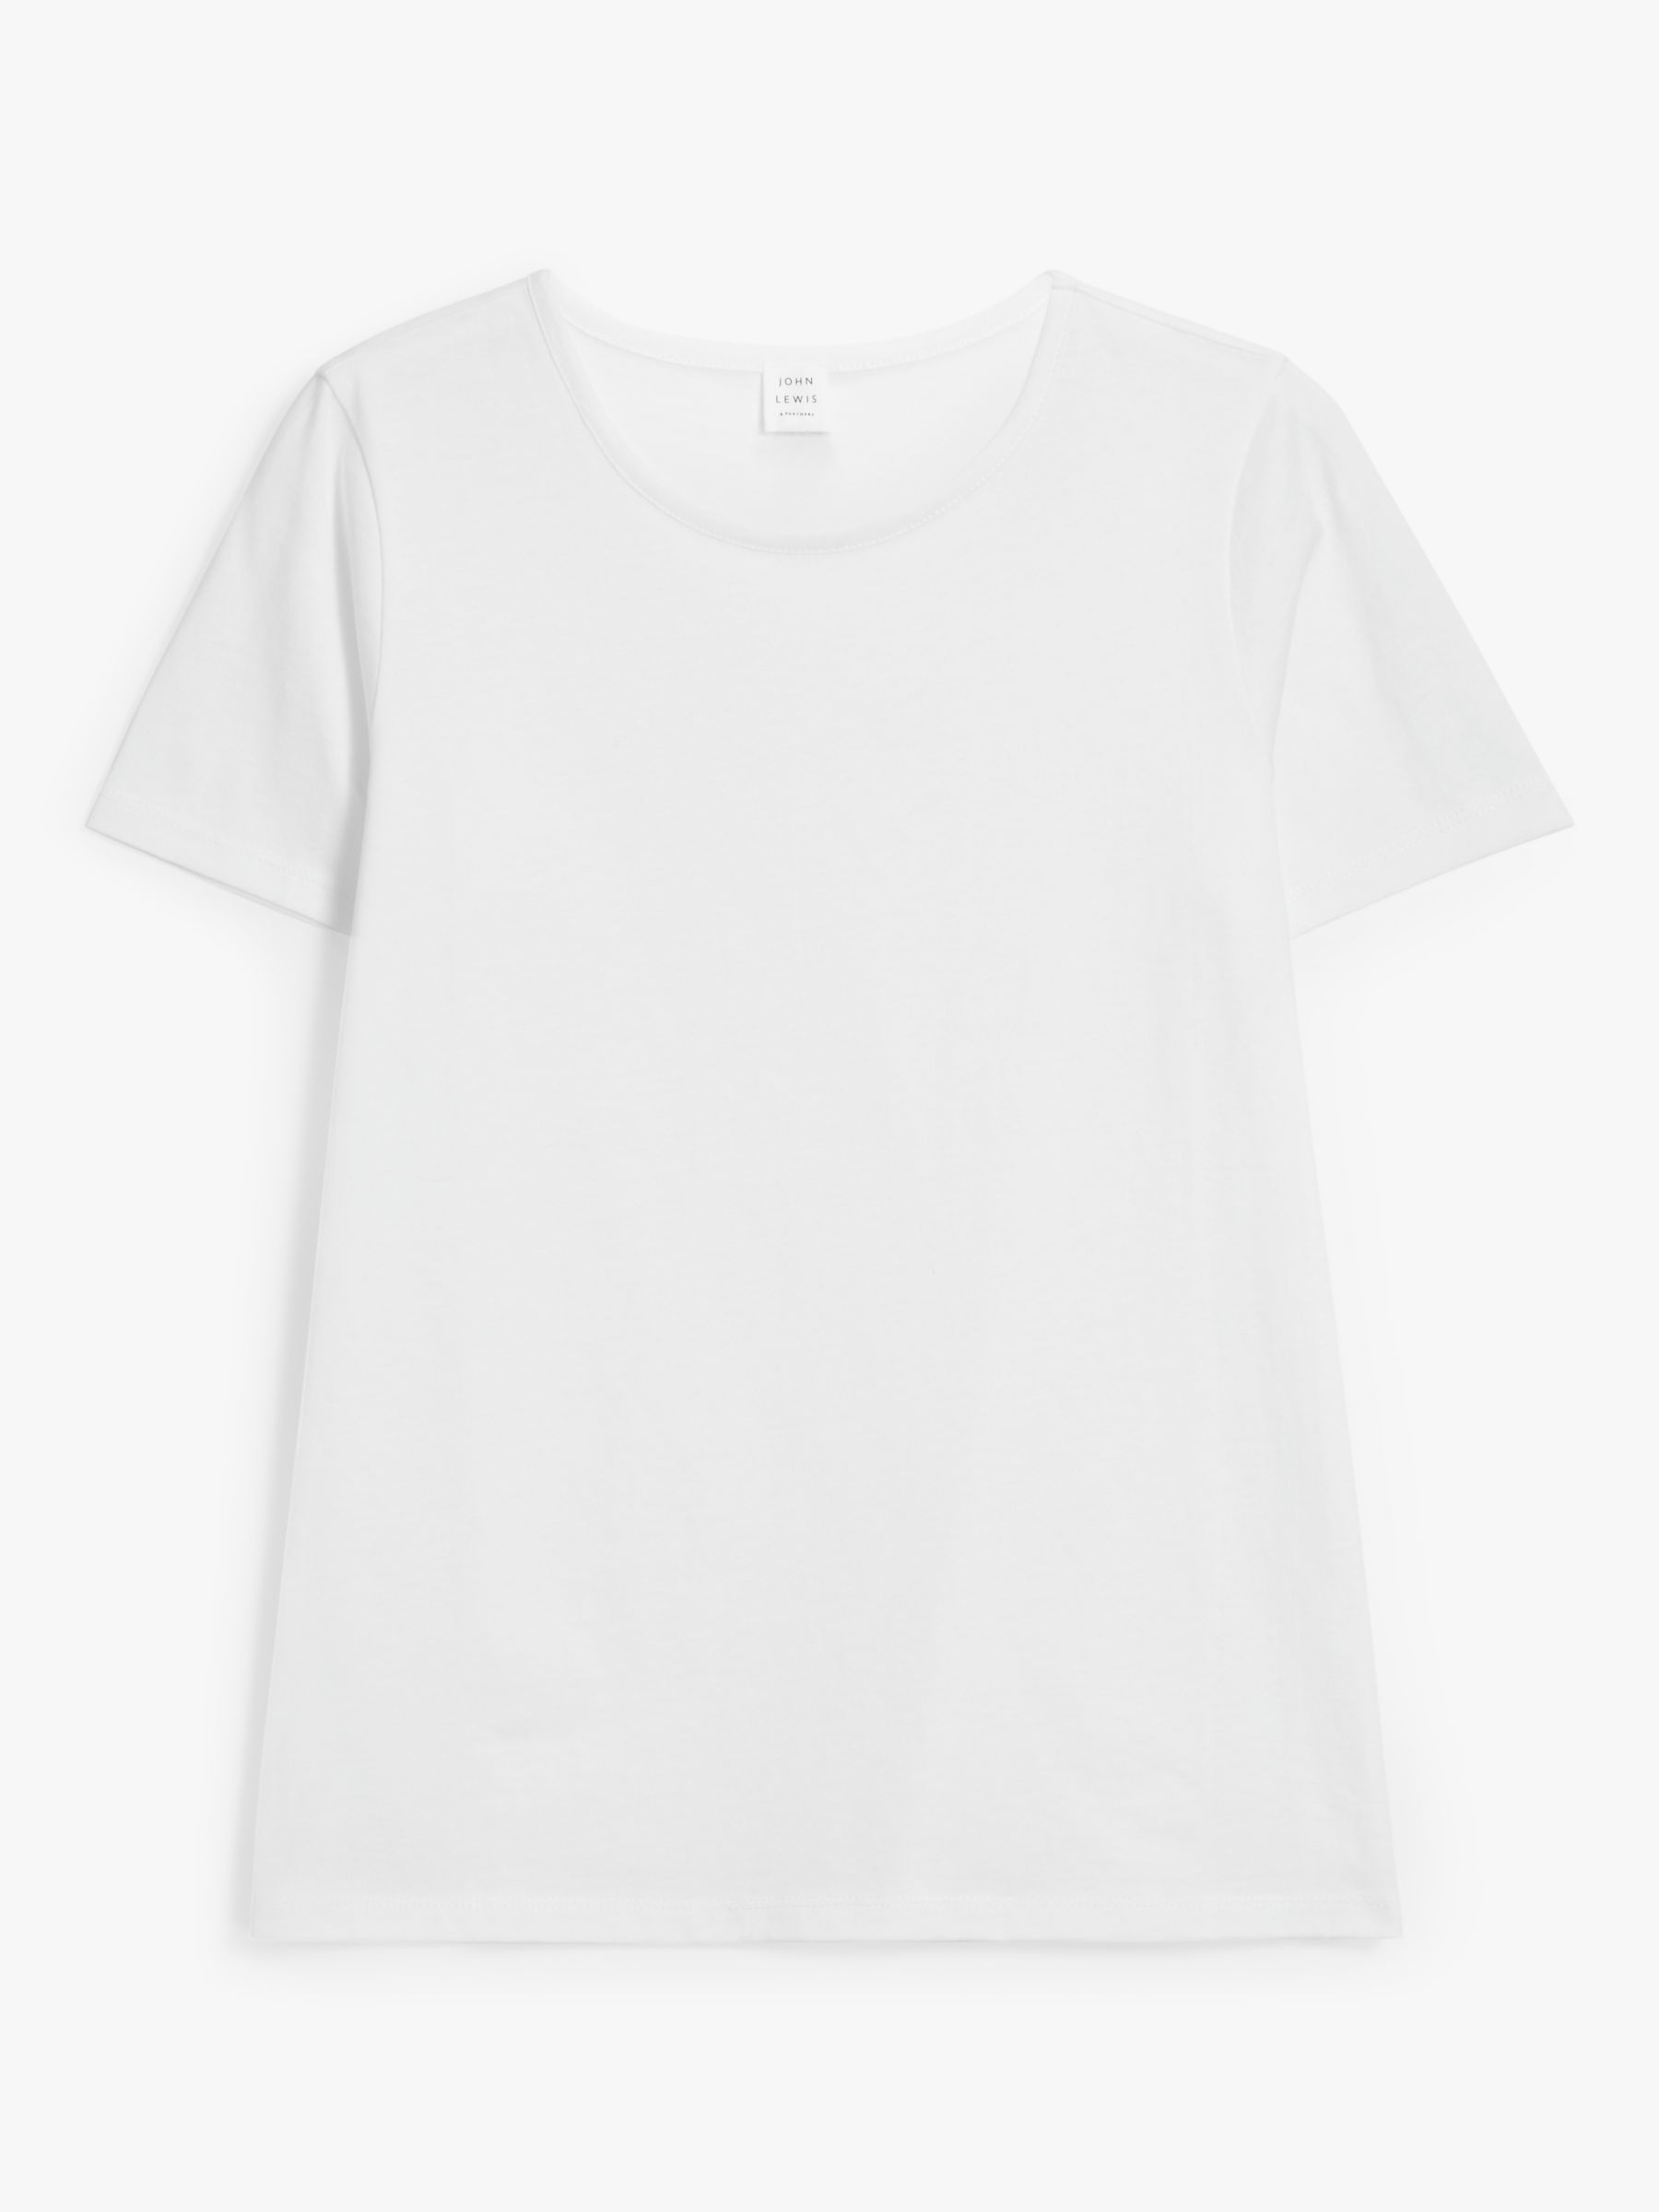 John Lewis & Partners Perfect Basic T-Shirt